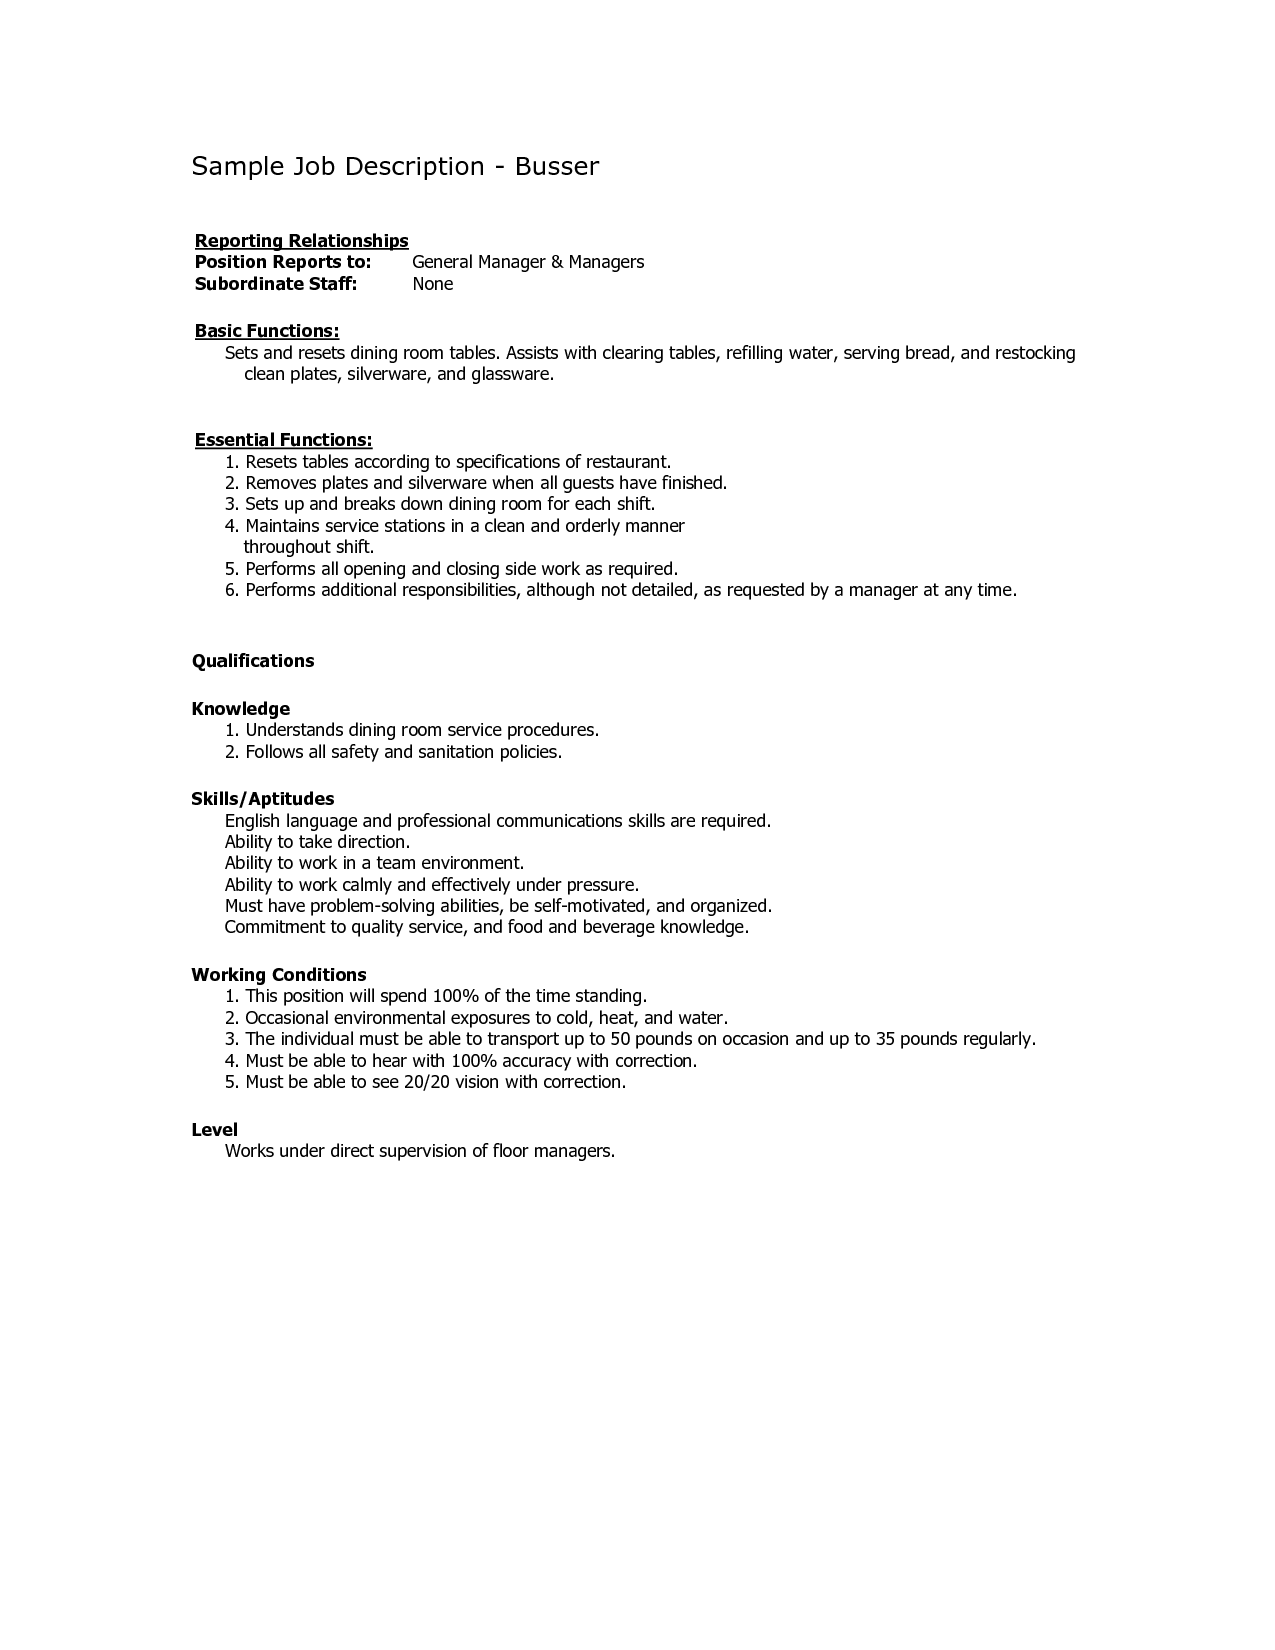 busser resume sample restaurant busser job description for resume - Table Busser Job Description